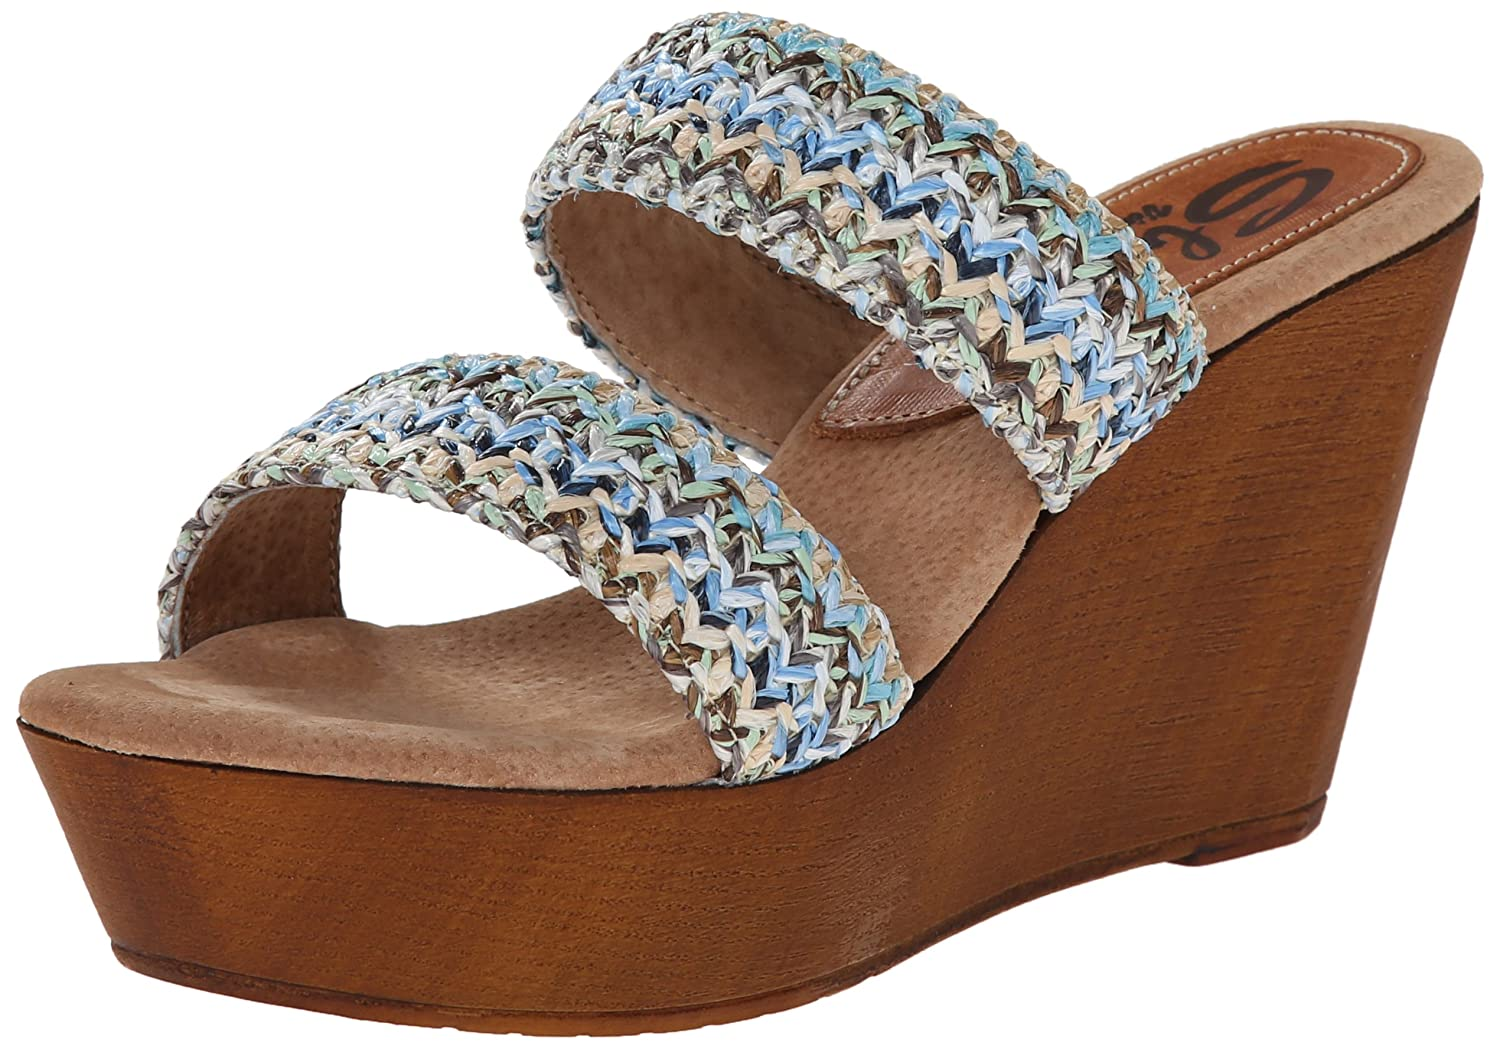 Sbicca Women's Lighthouse Wedge Sandal B00O1BK54K 8 B(M) US|Blue/Multi